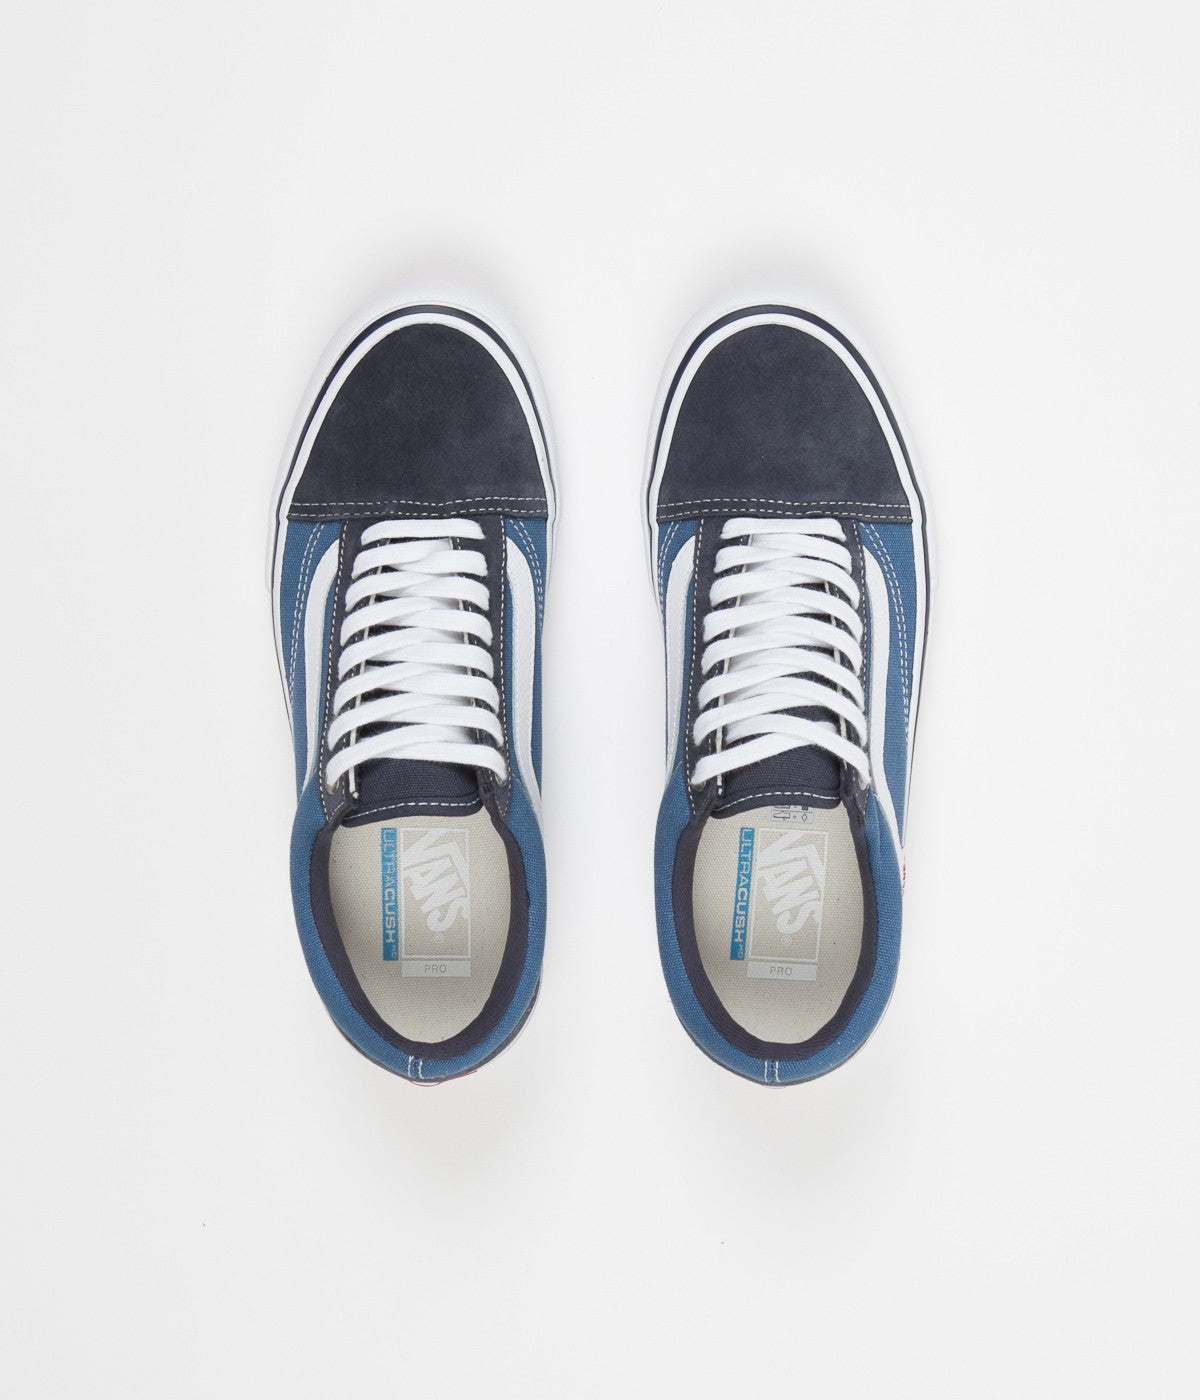 03d294779eac Vans Old Skool Pro Shoes - Navy   STV Navy   White ...